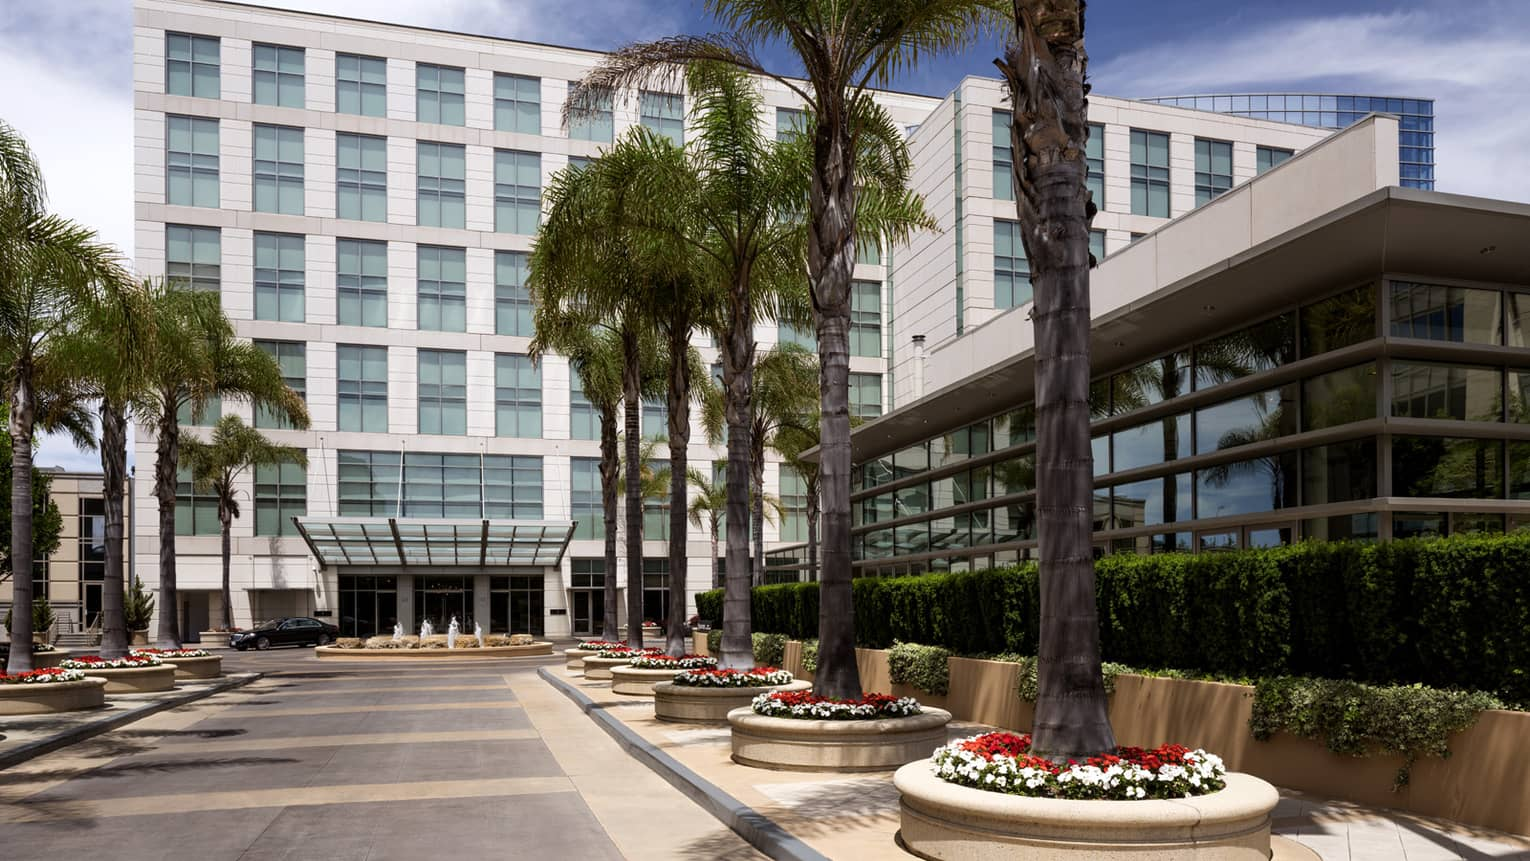 Four Seasons Hotel Silicon Valley at East Palo Alto exterior courtyard, potted palm trees